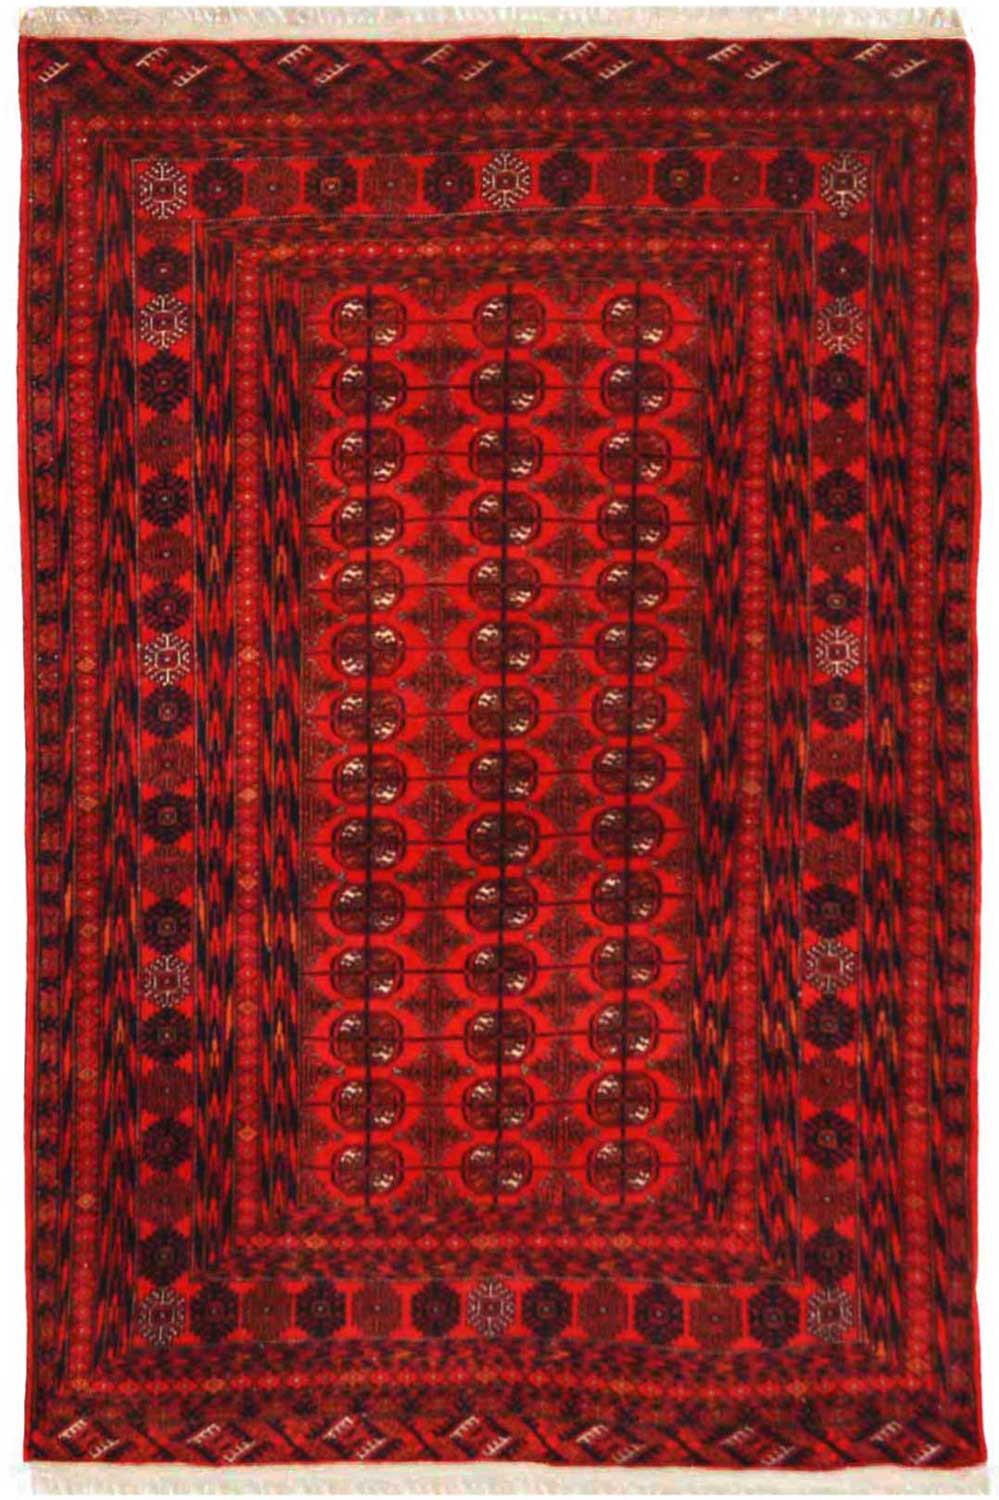 Handmade Afghan Bokhara Rug Online In Red Color At